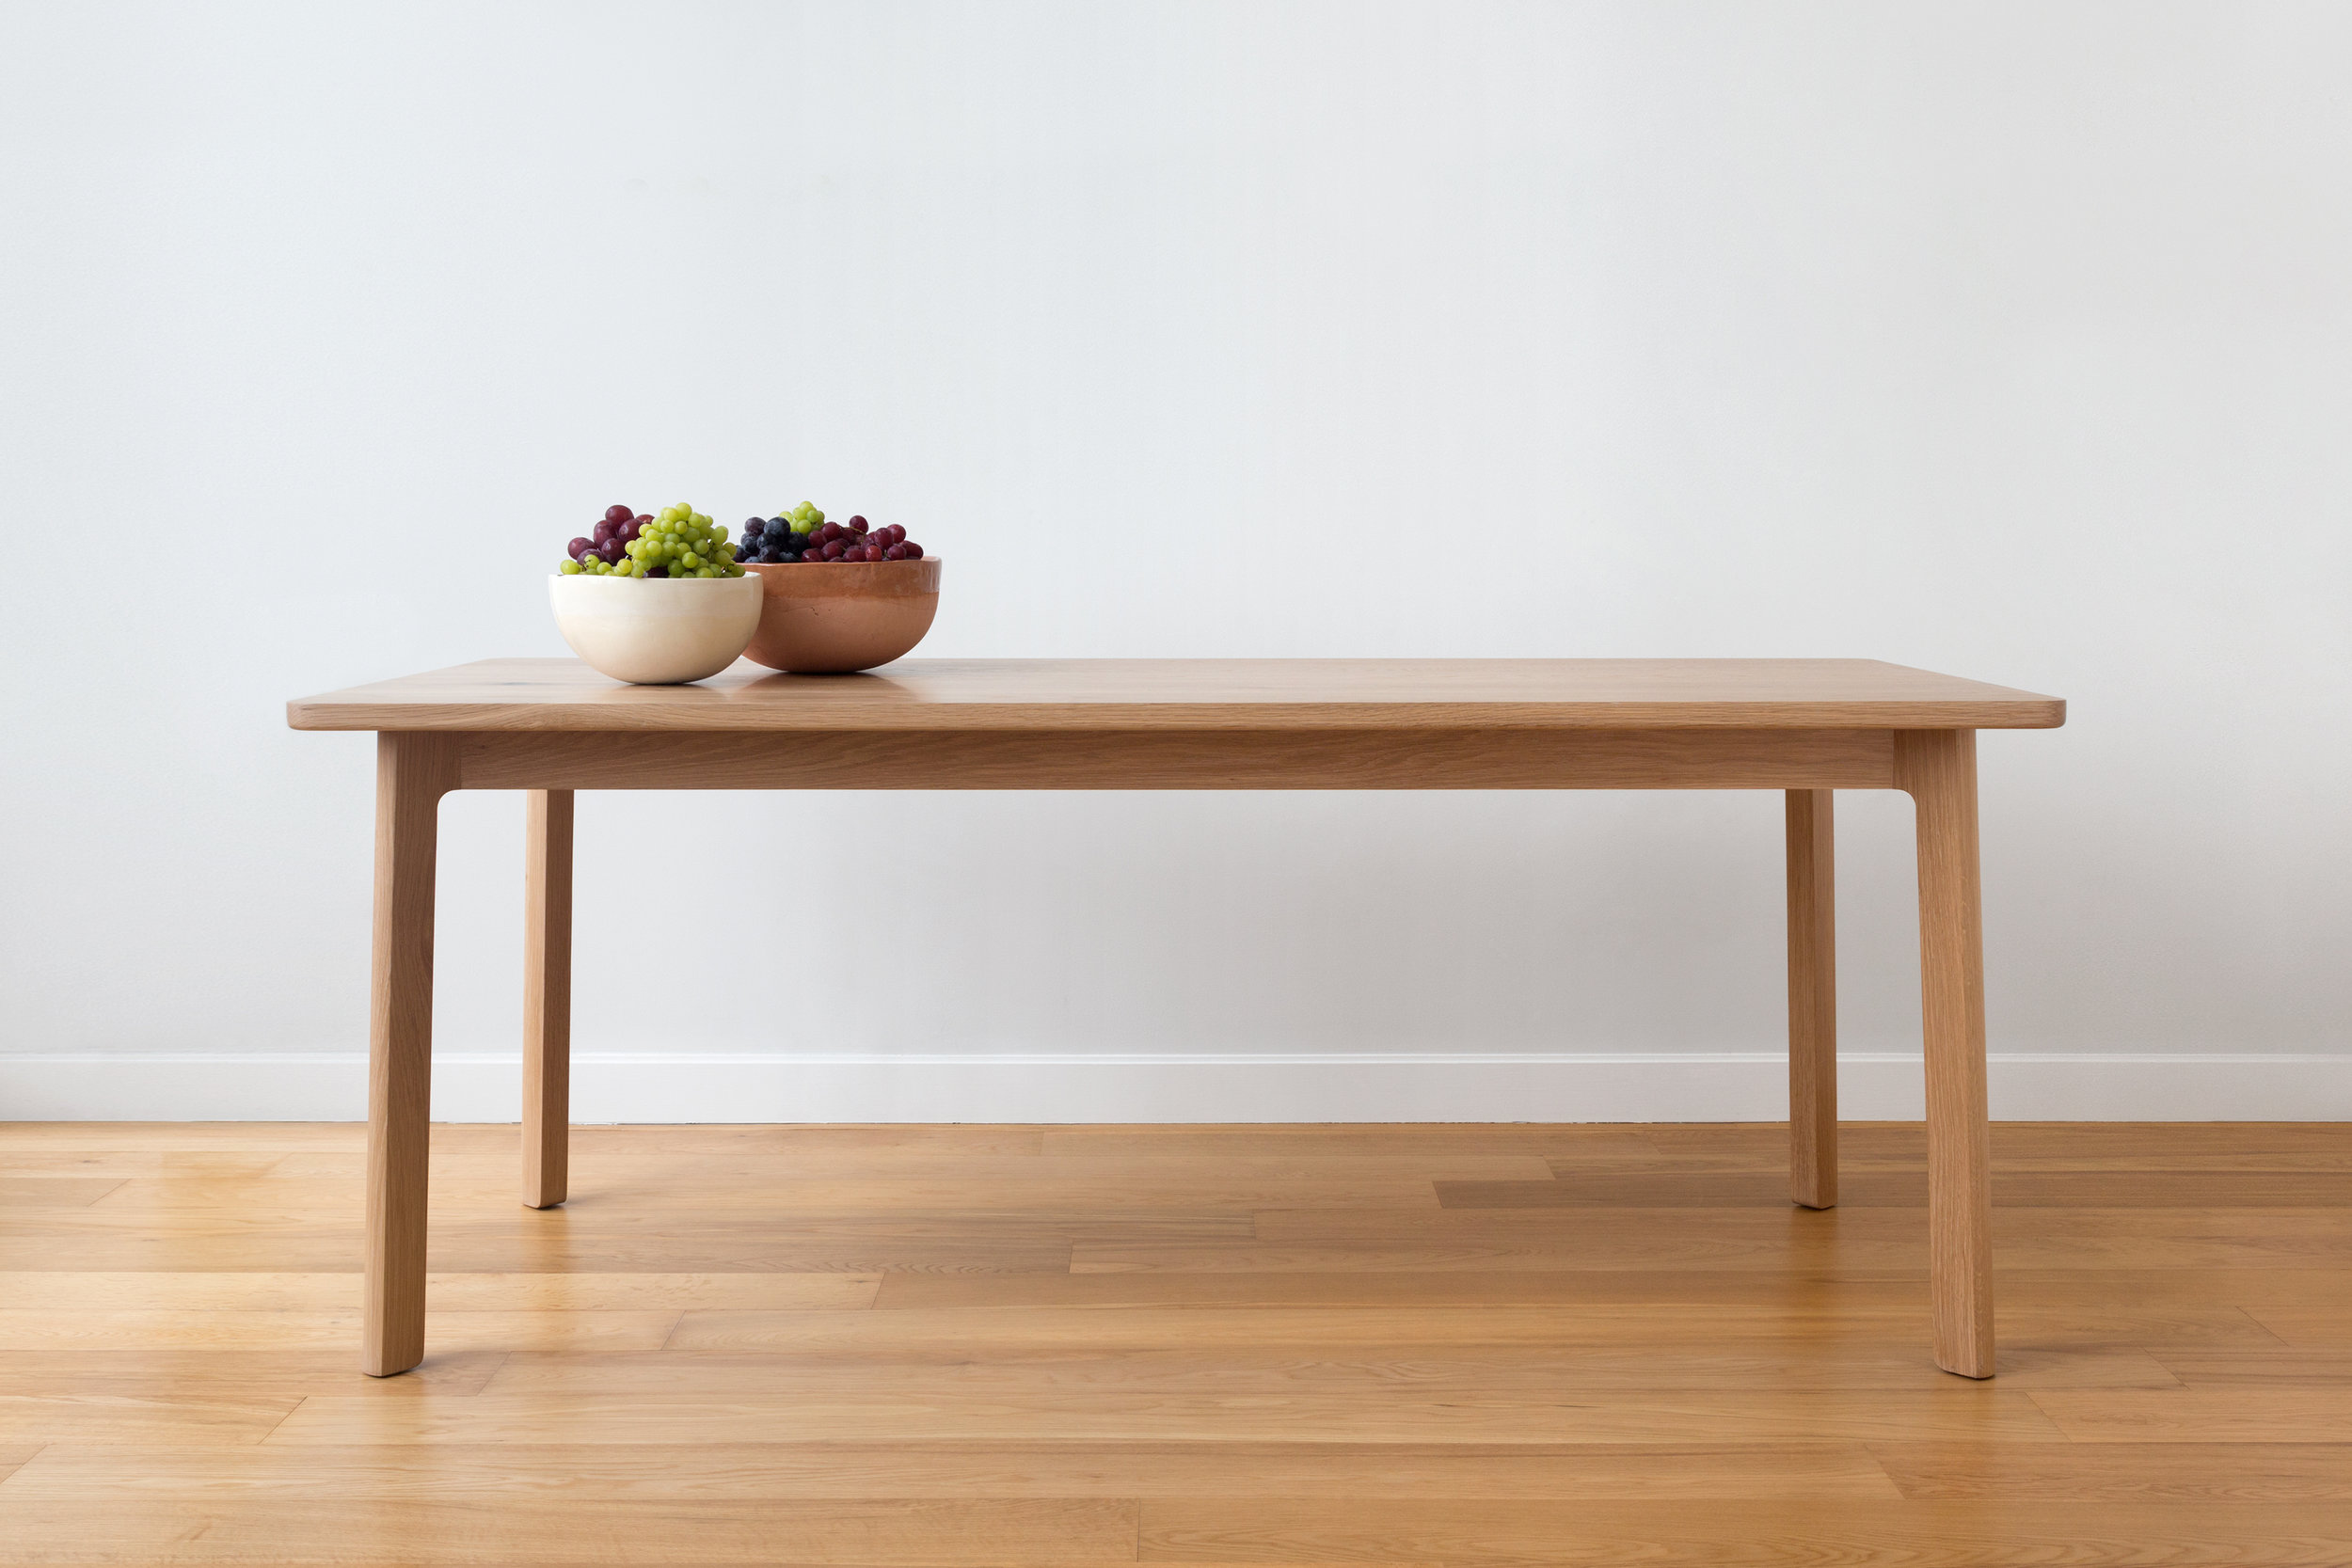 Fowler Country Table by Piet Houtenbos